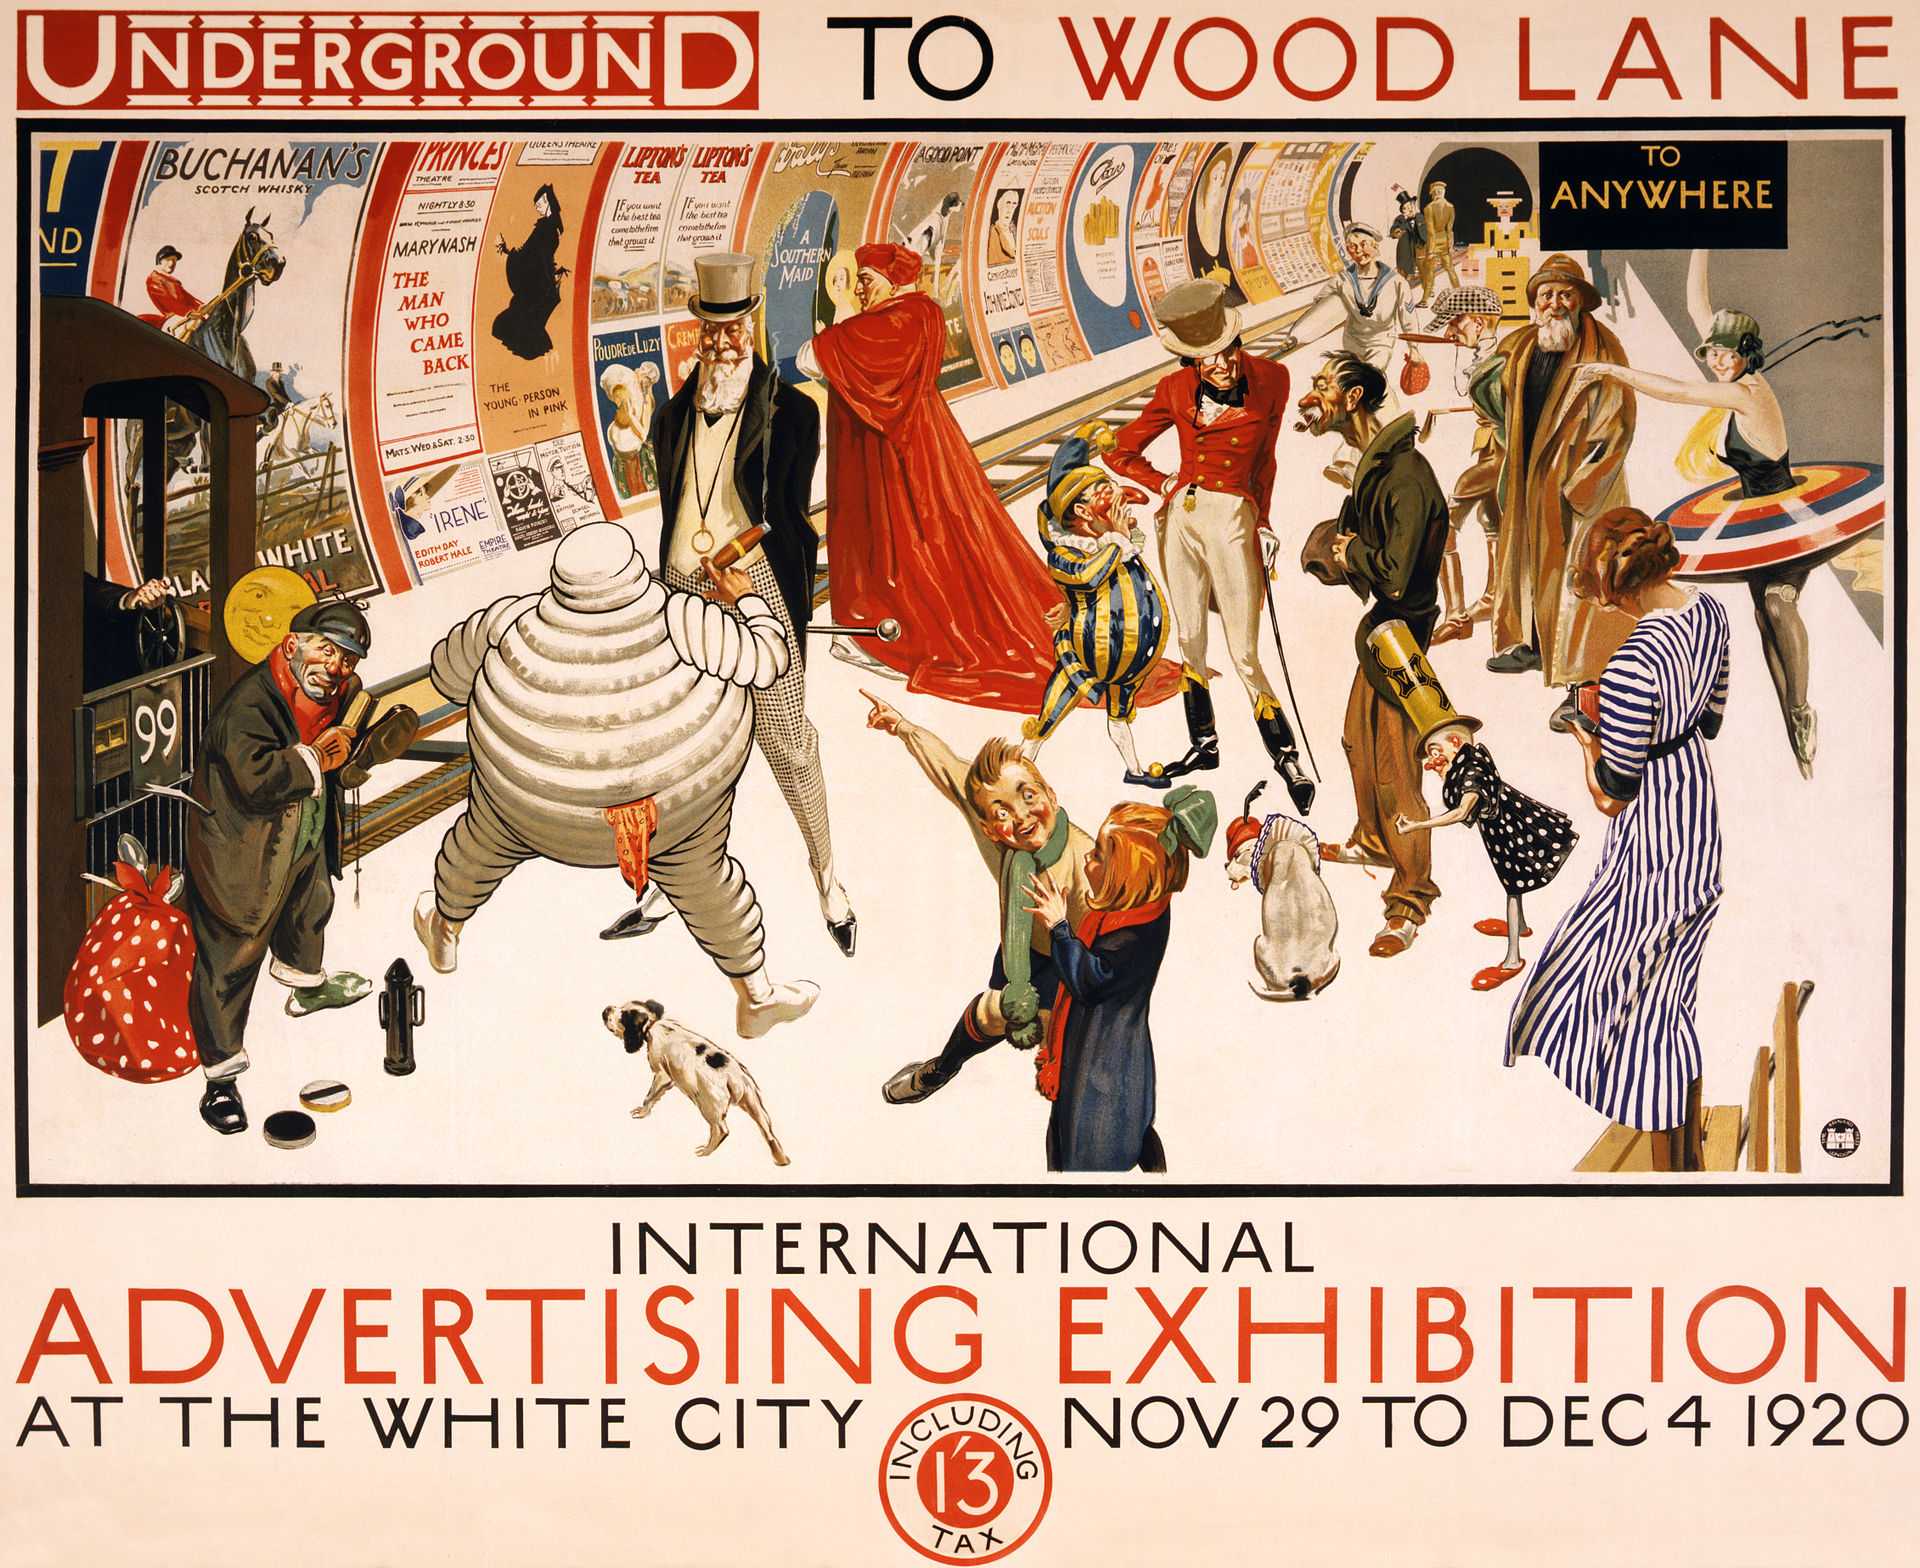 Underground_to_Wood_Lane_to_anywhere,_International_Advertising_Exhibition_at_the_White_City,_1920.jpg